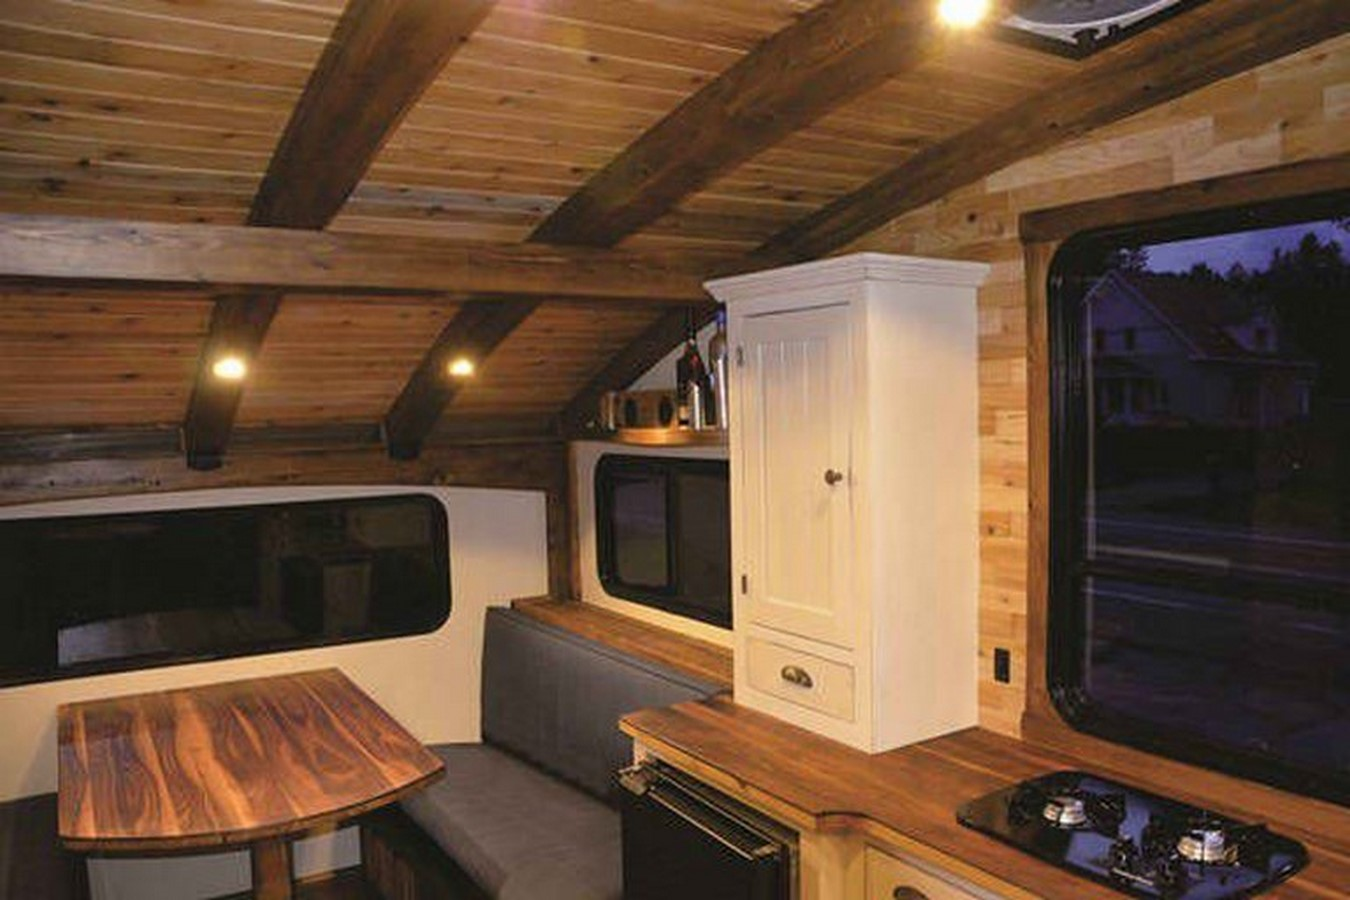 15 Examples of Tiny-home designs - Sheet54